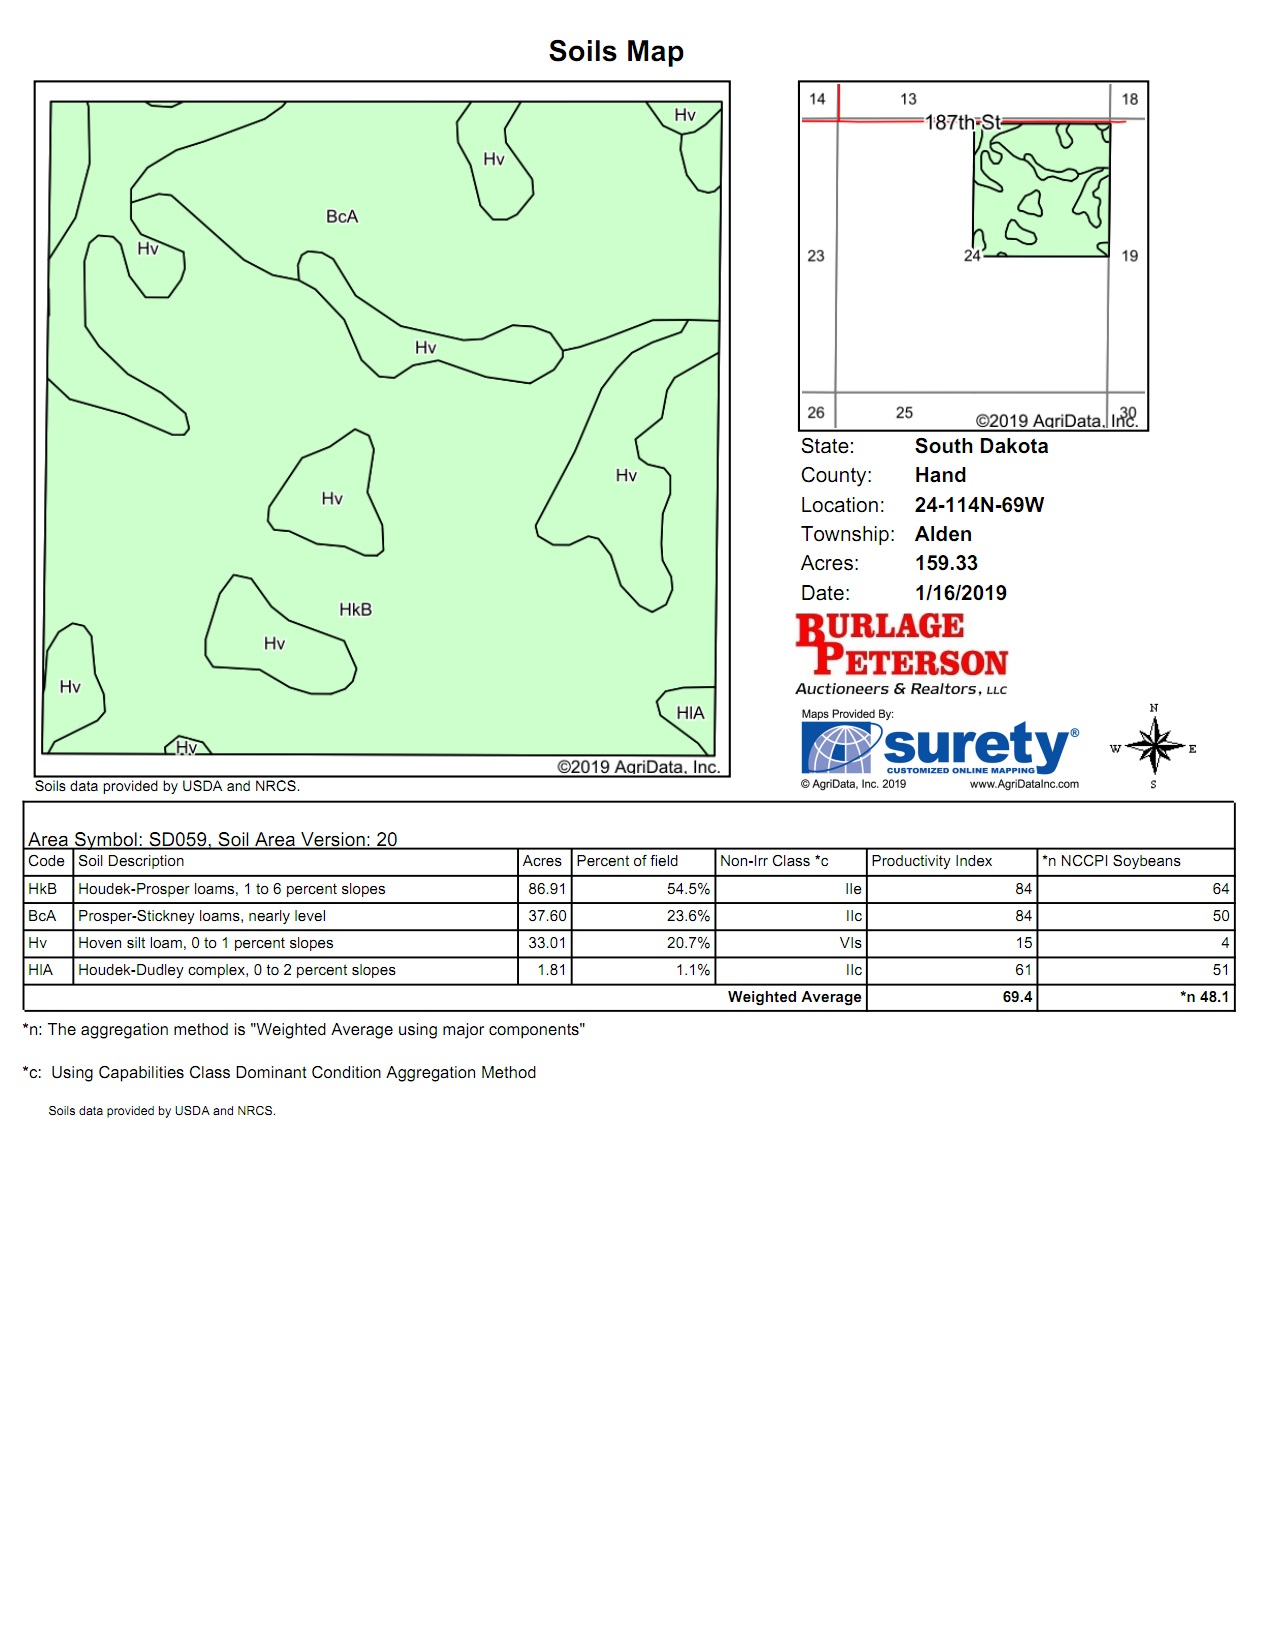 Tract 5 Soil Map